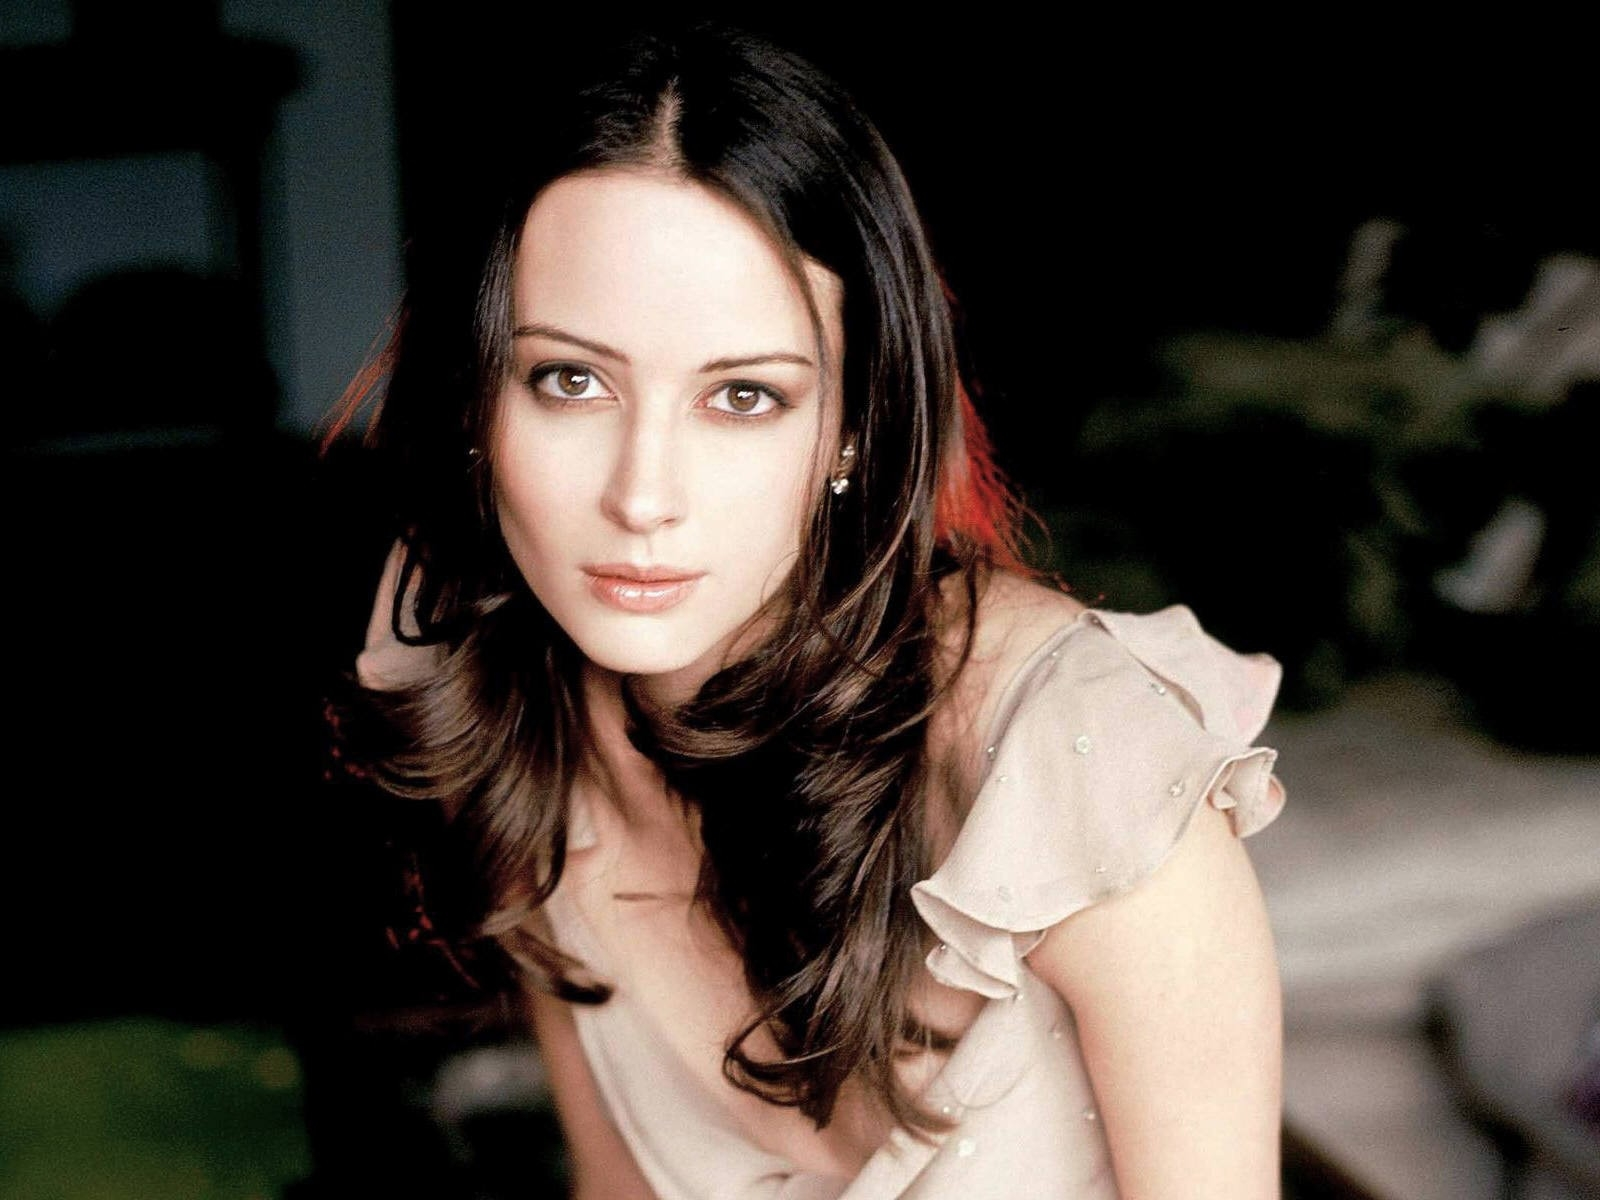 Wallpaper di Amy Acker - 10